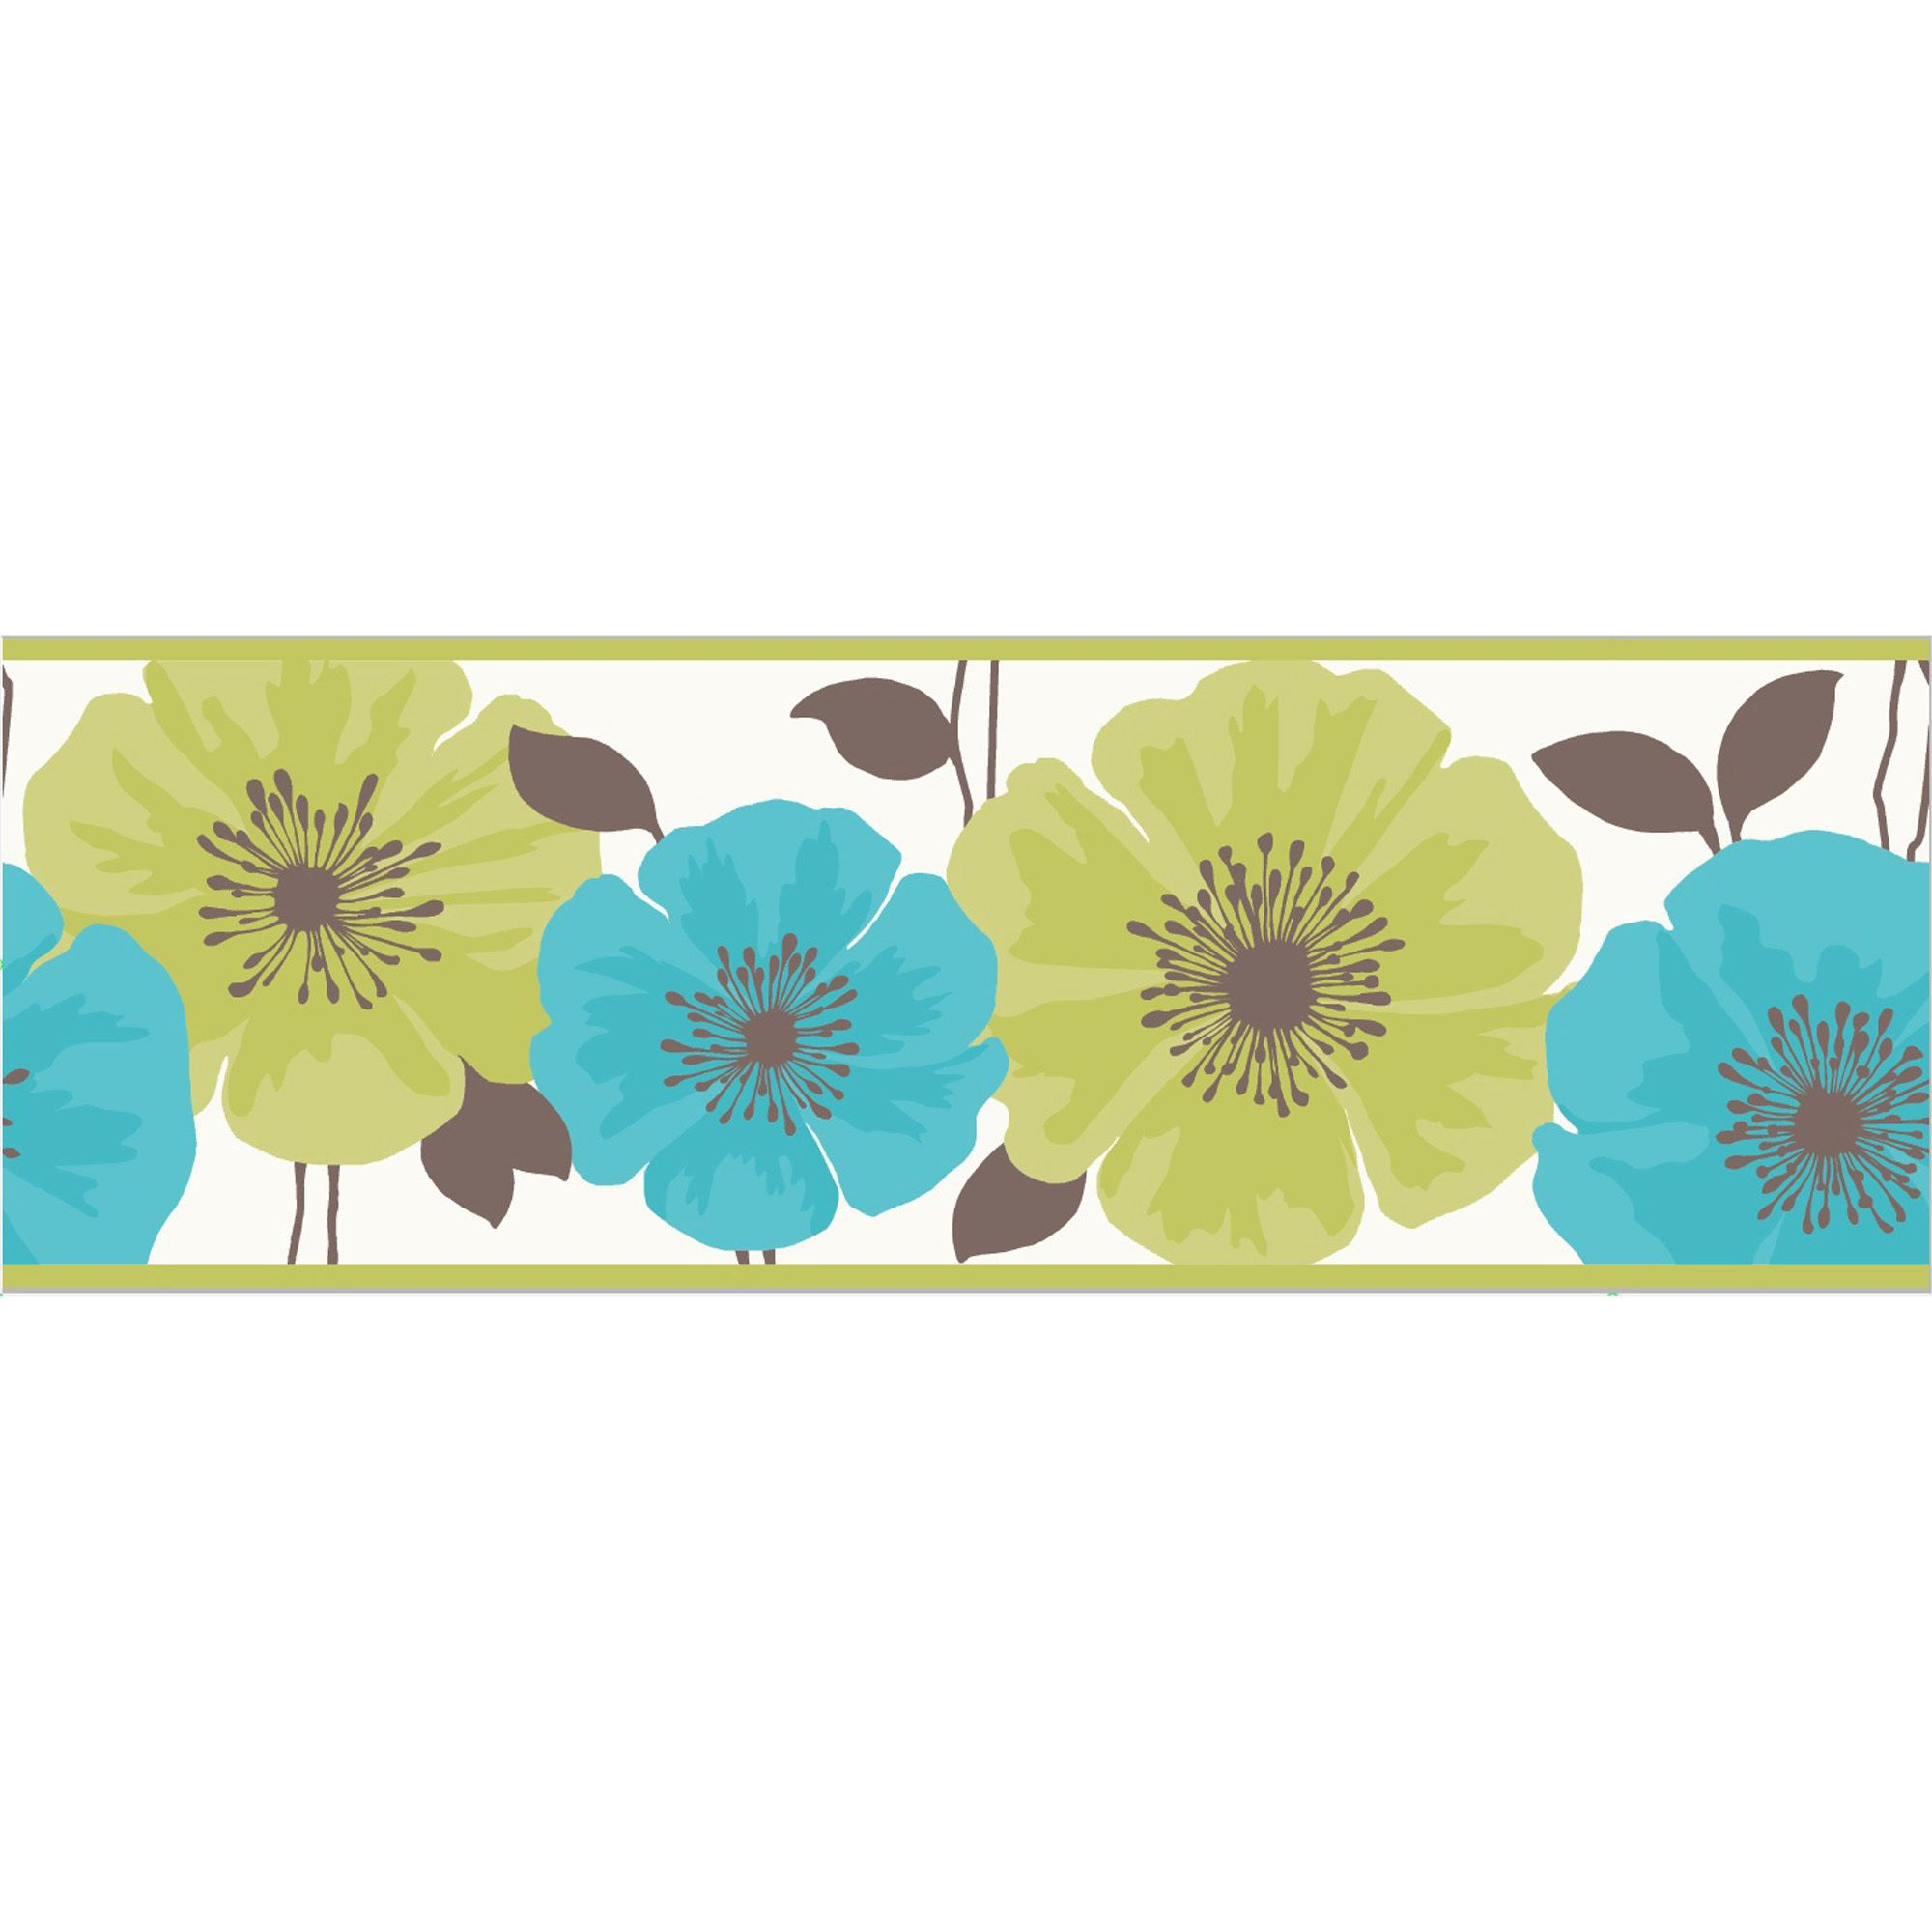 Poppie Green Amp Teal Floral Border Departments Diy At B Amp Q